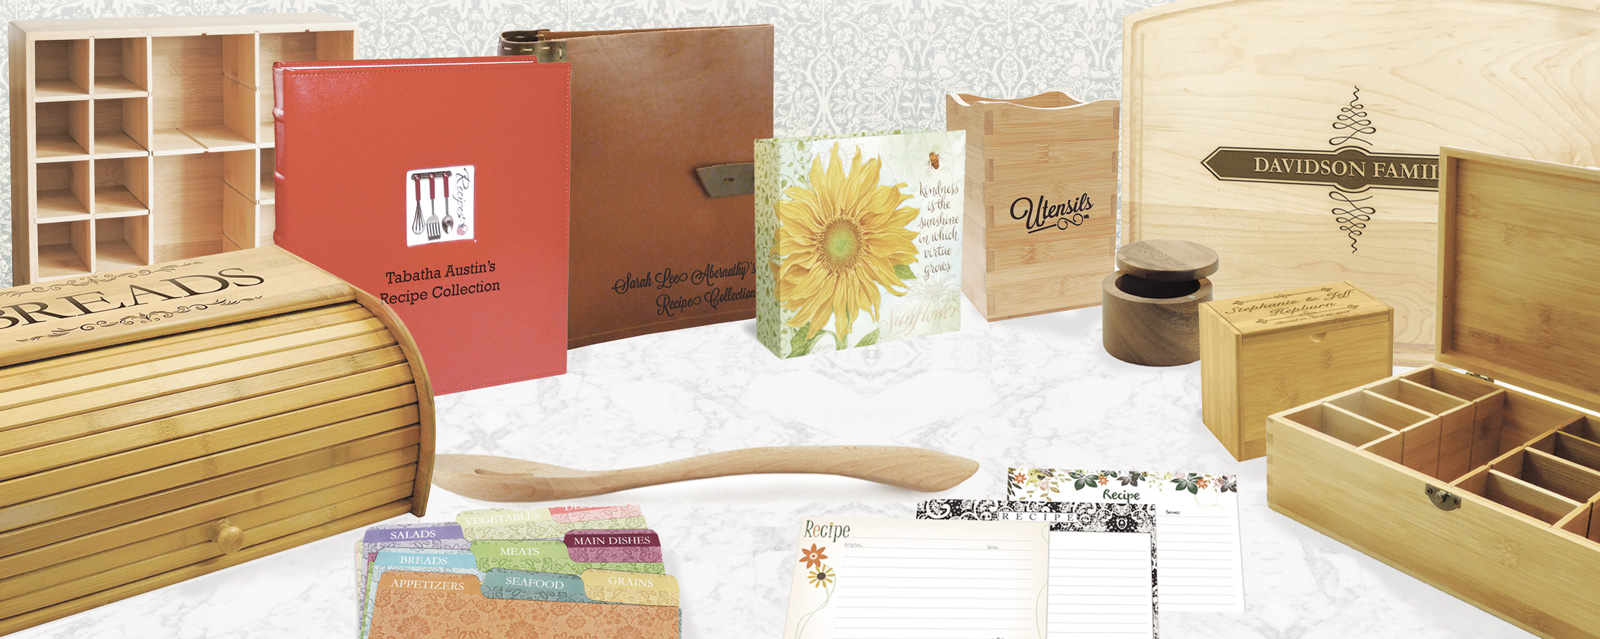 Cookbookpeople Recipe Boxes, Recipe Cards, Tea boxes & More